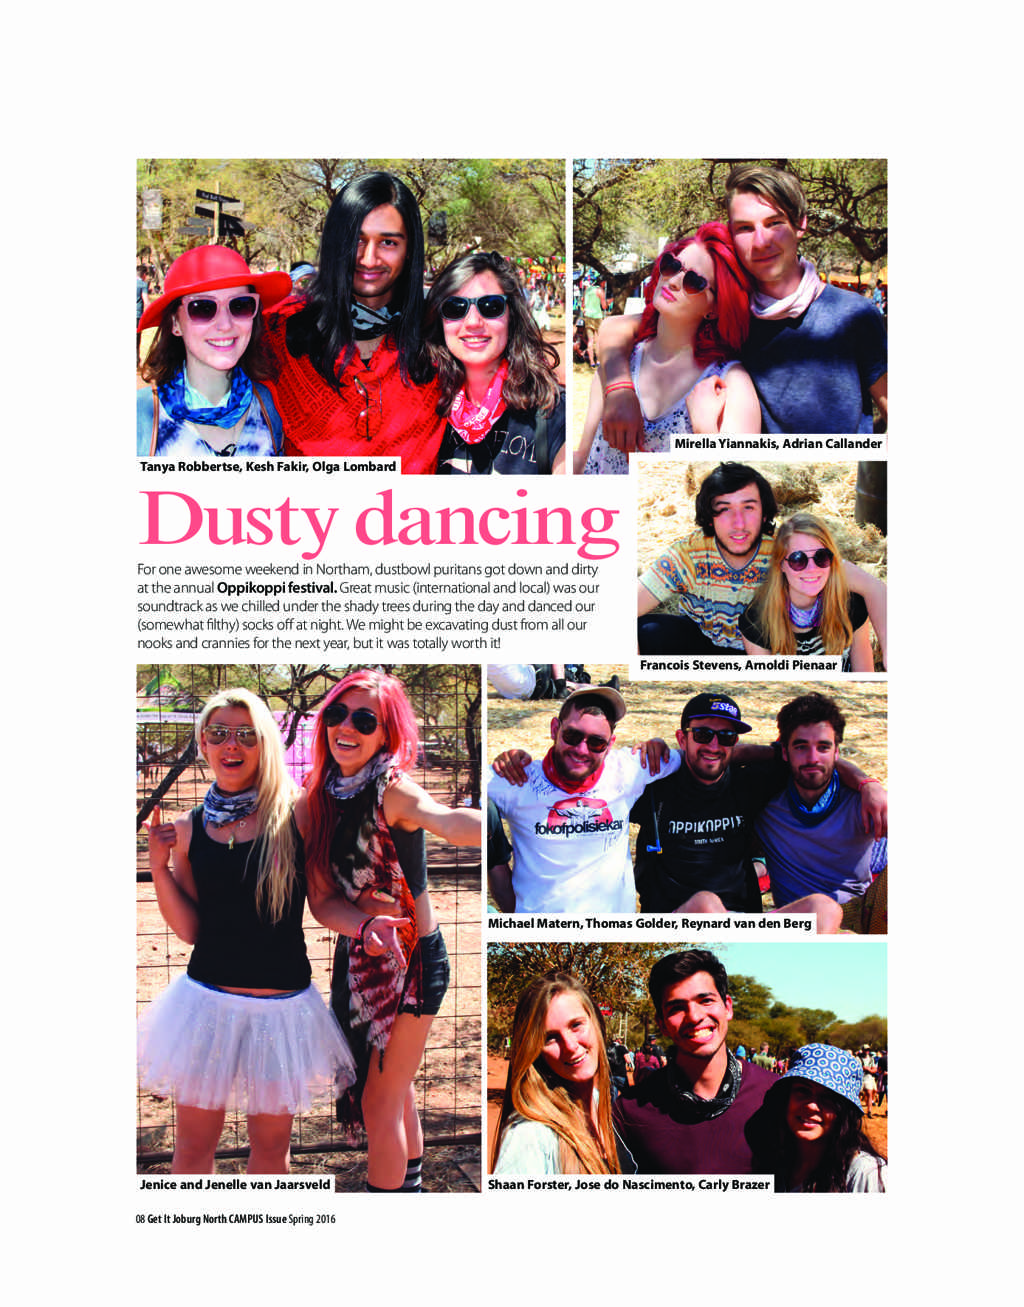 get-it-joburg-north-campus-september-2016-2-epapers-page-8